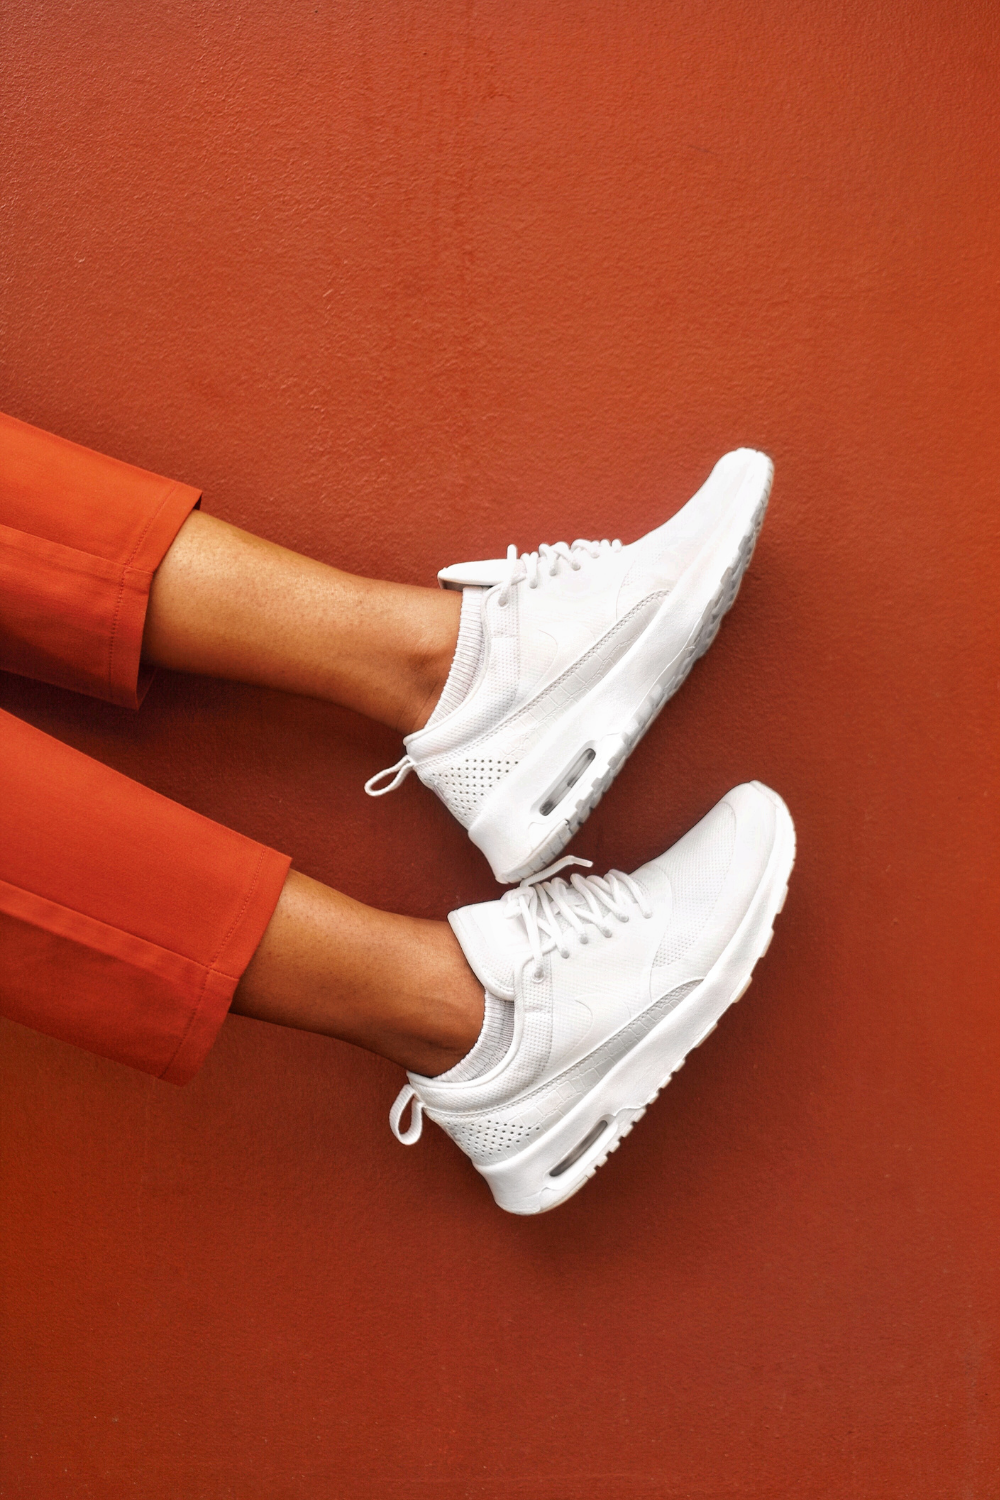 White sneakers for at home workout